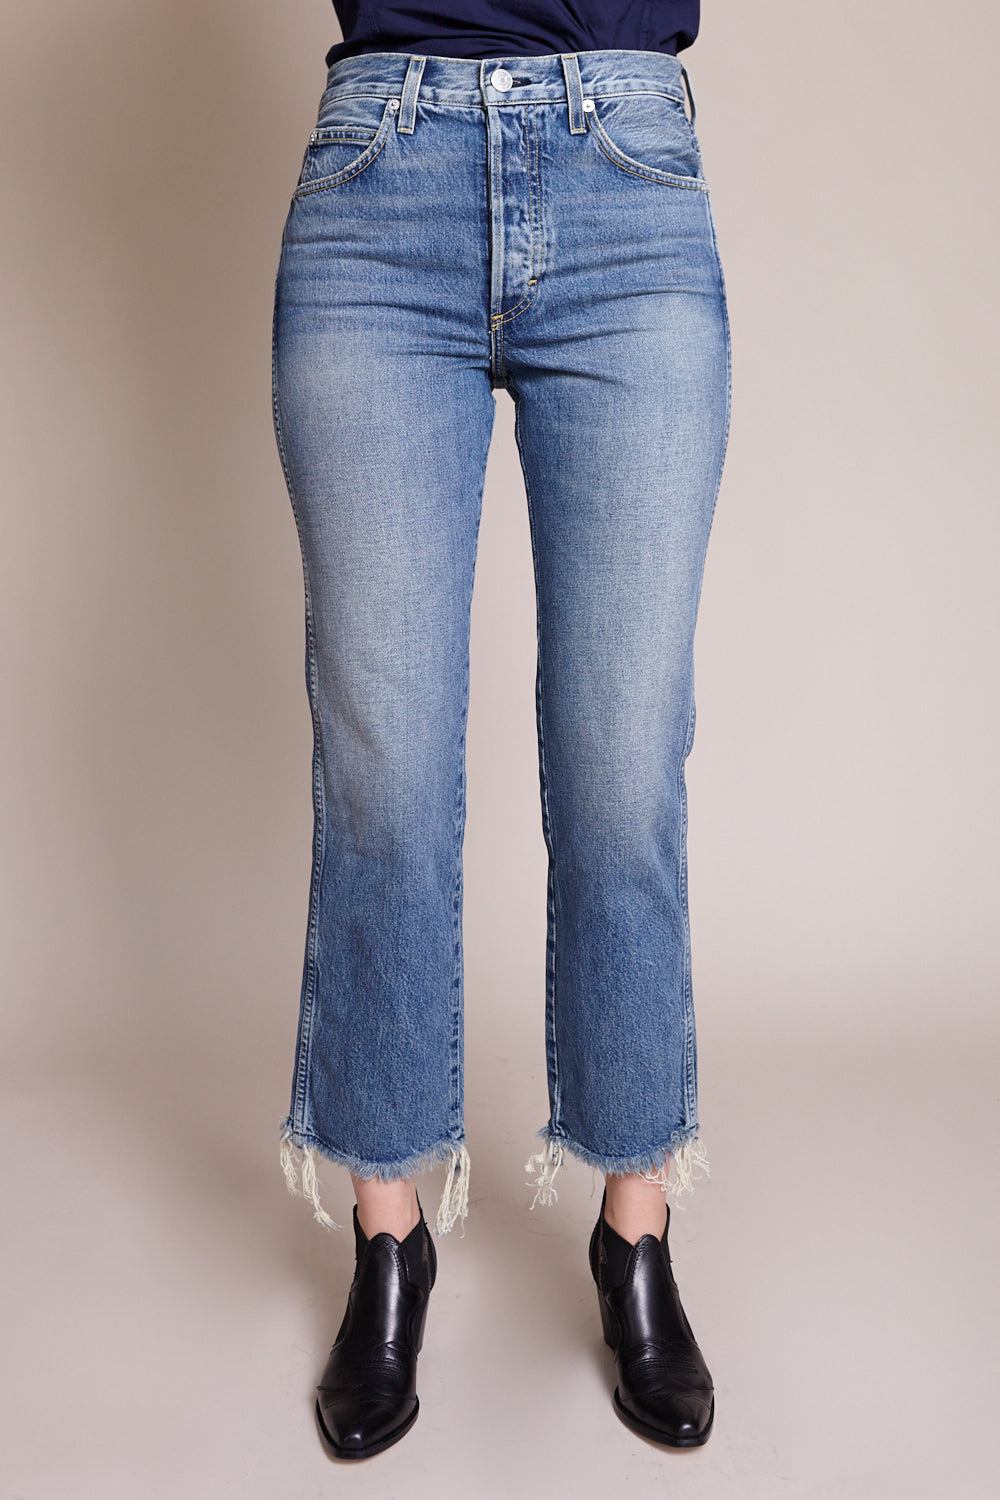 Layla High Rise Straight Leg Jean in Tomcat